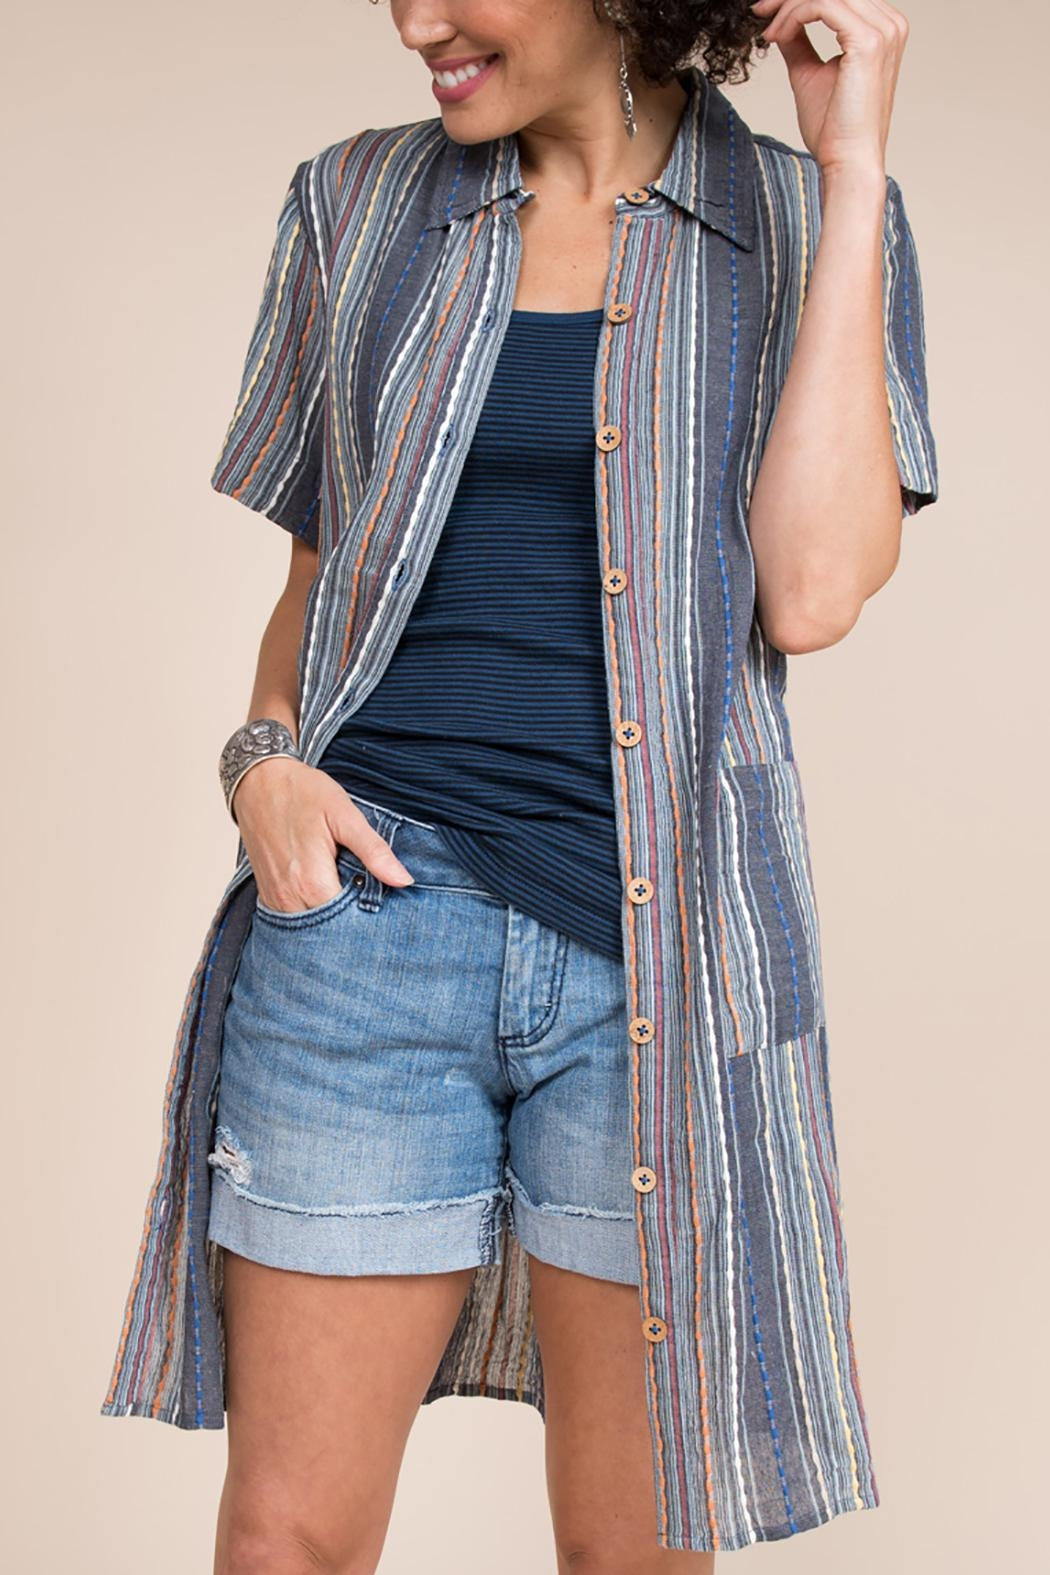 Ivy Jane / Uncle Frank  Striped Tunic Shirt - Front Full Image